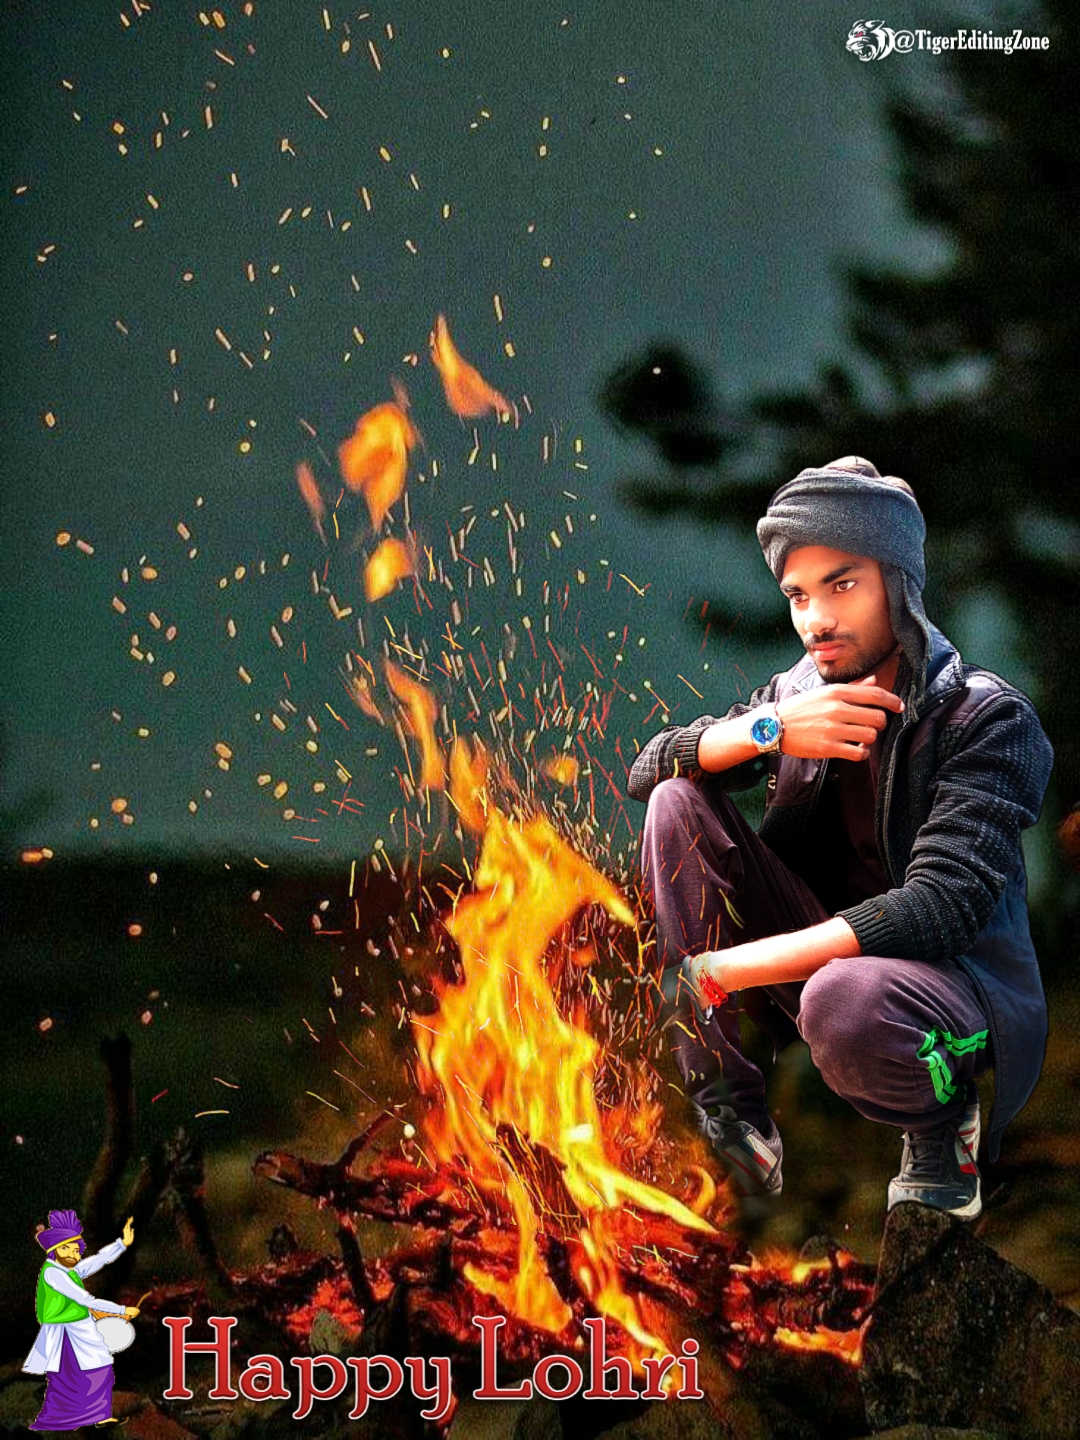 Happy Lohri Photo Editing in PicsArt Backgrounds & PNG Download | Happy Lohri celebrations